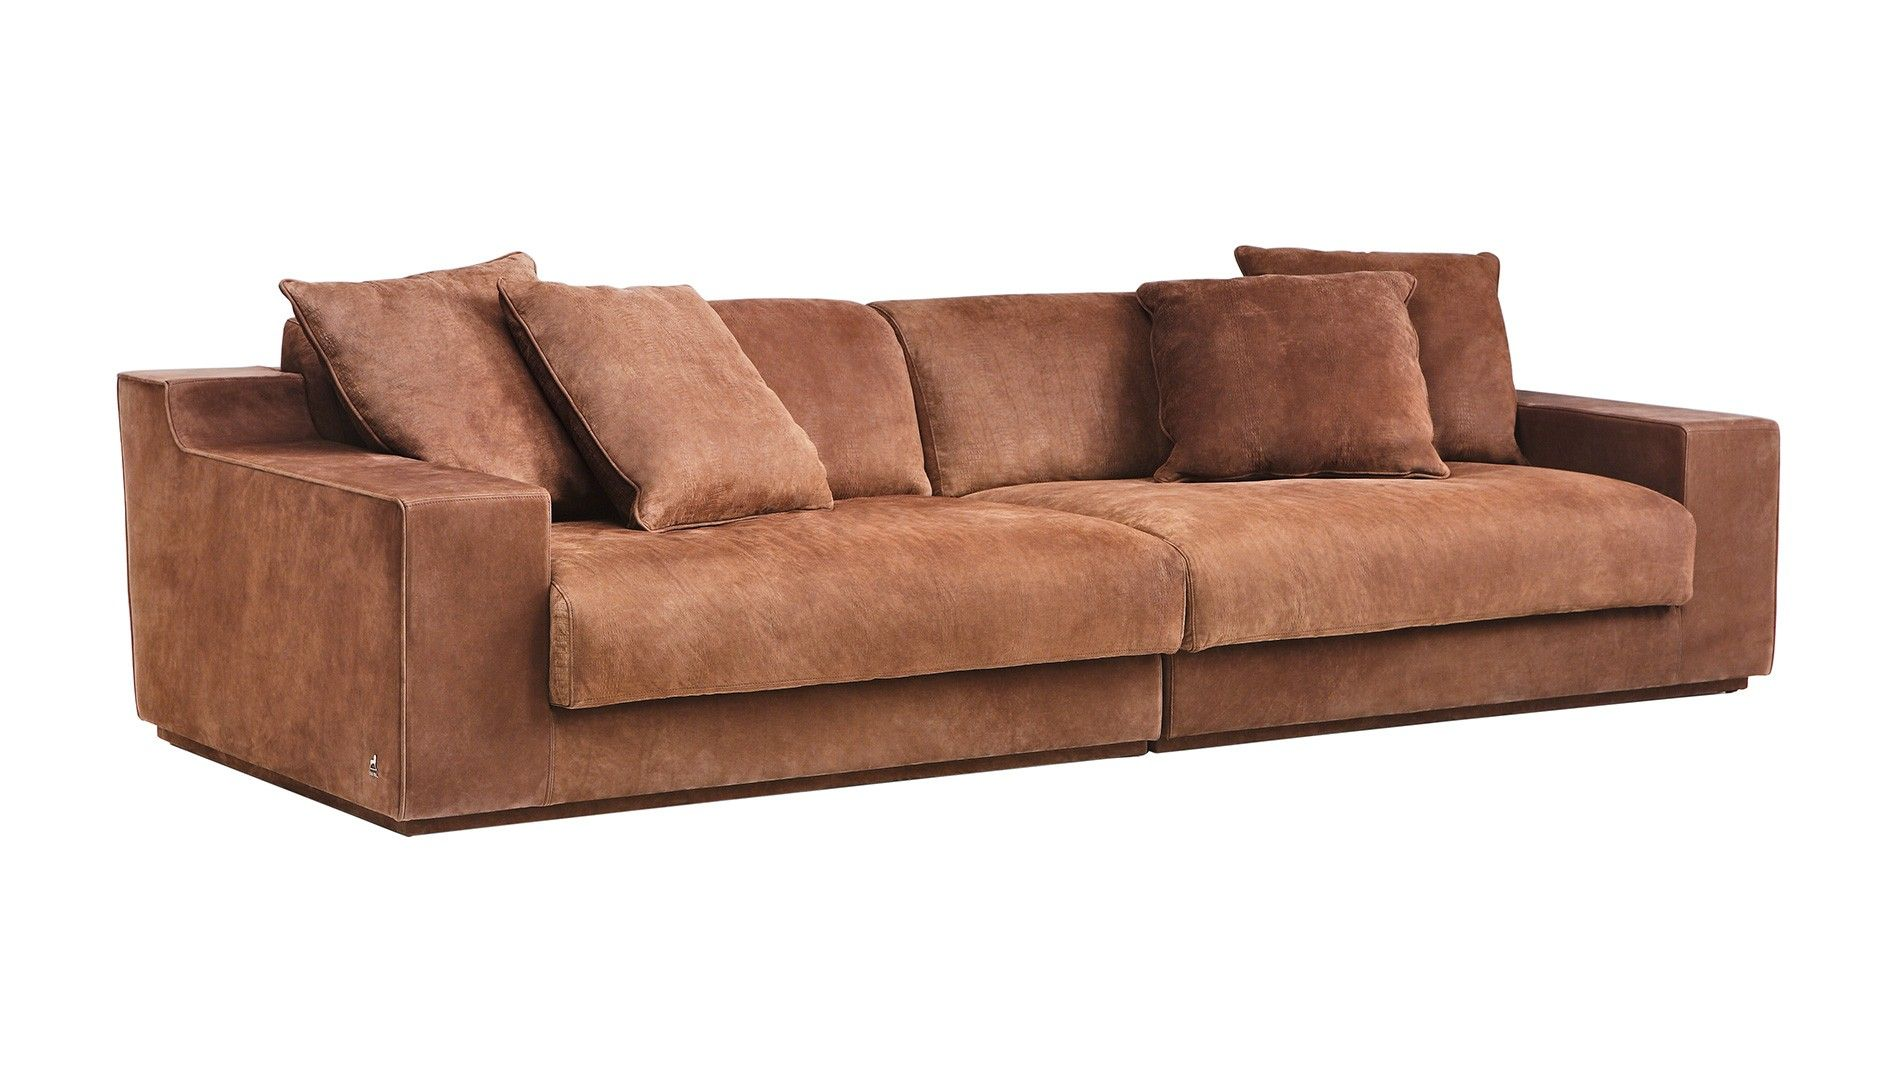 Shop Smania Mister P Sofa At Luxdeco Discover Luxury Collections From The World 39 S Leading Lighting Brands Free Uk Delive Sofa Design Sofa Couch Furniture